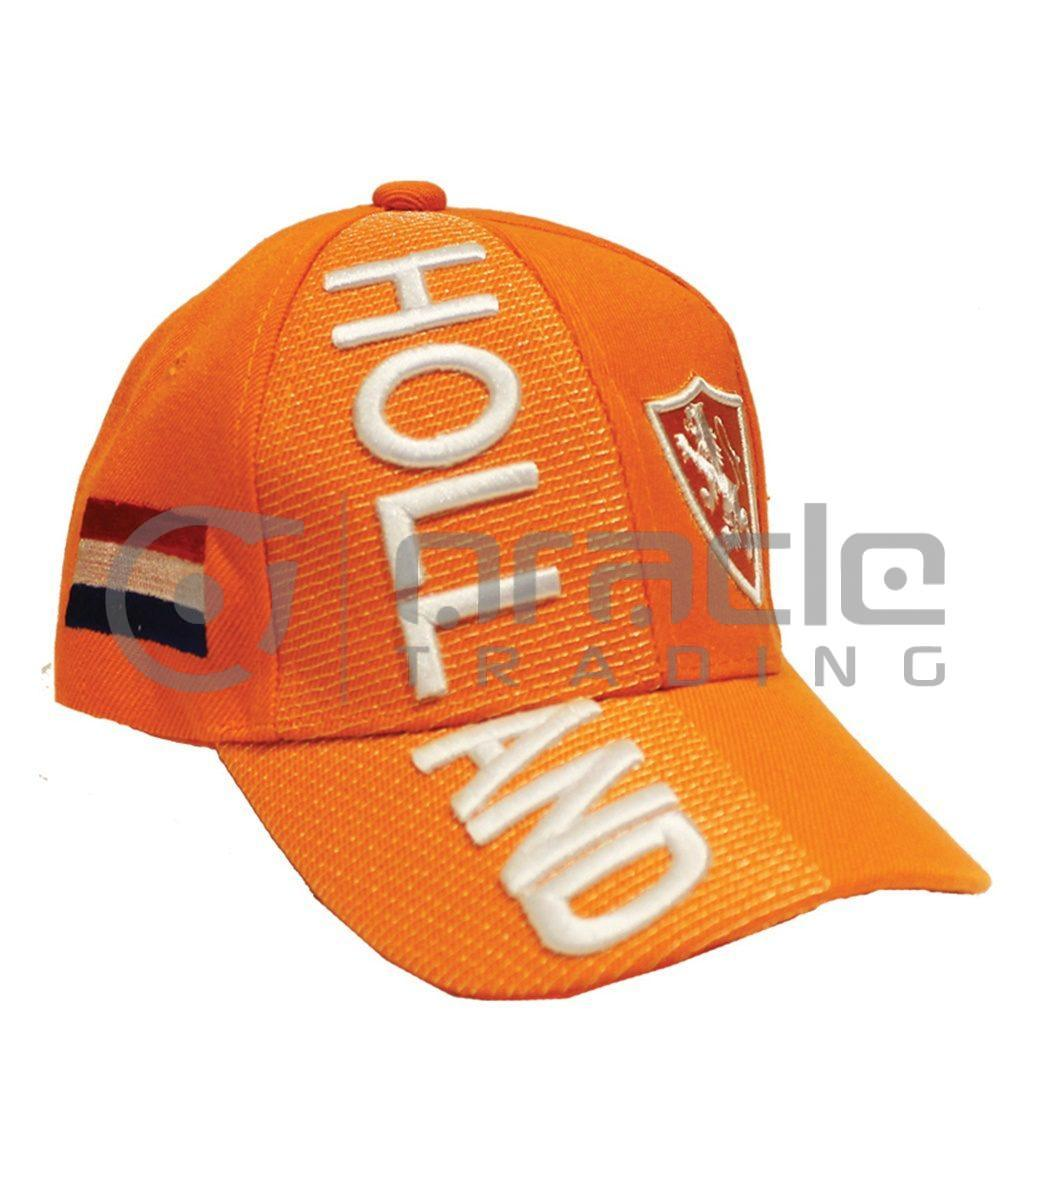 3D Holland Hat - Kid Size